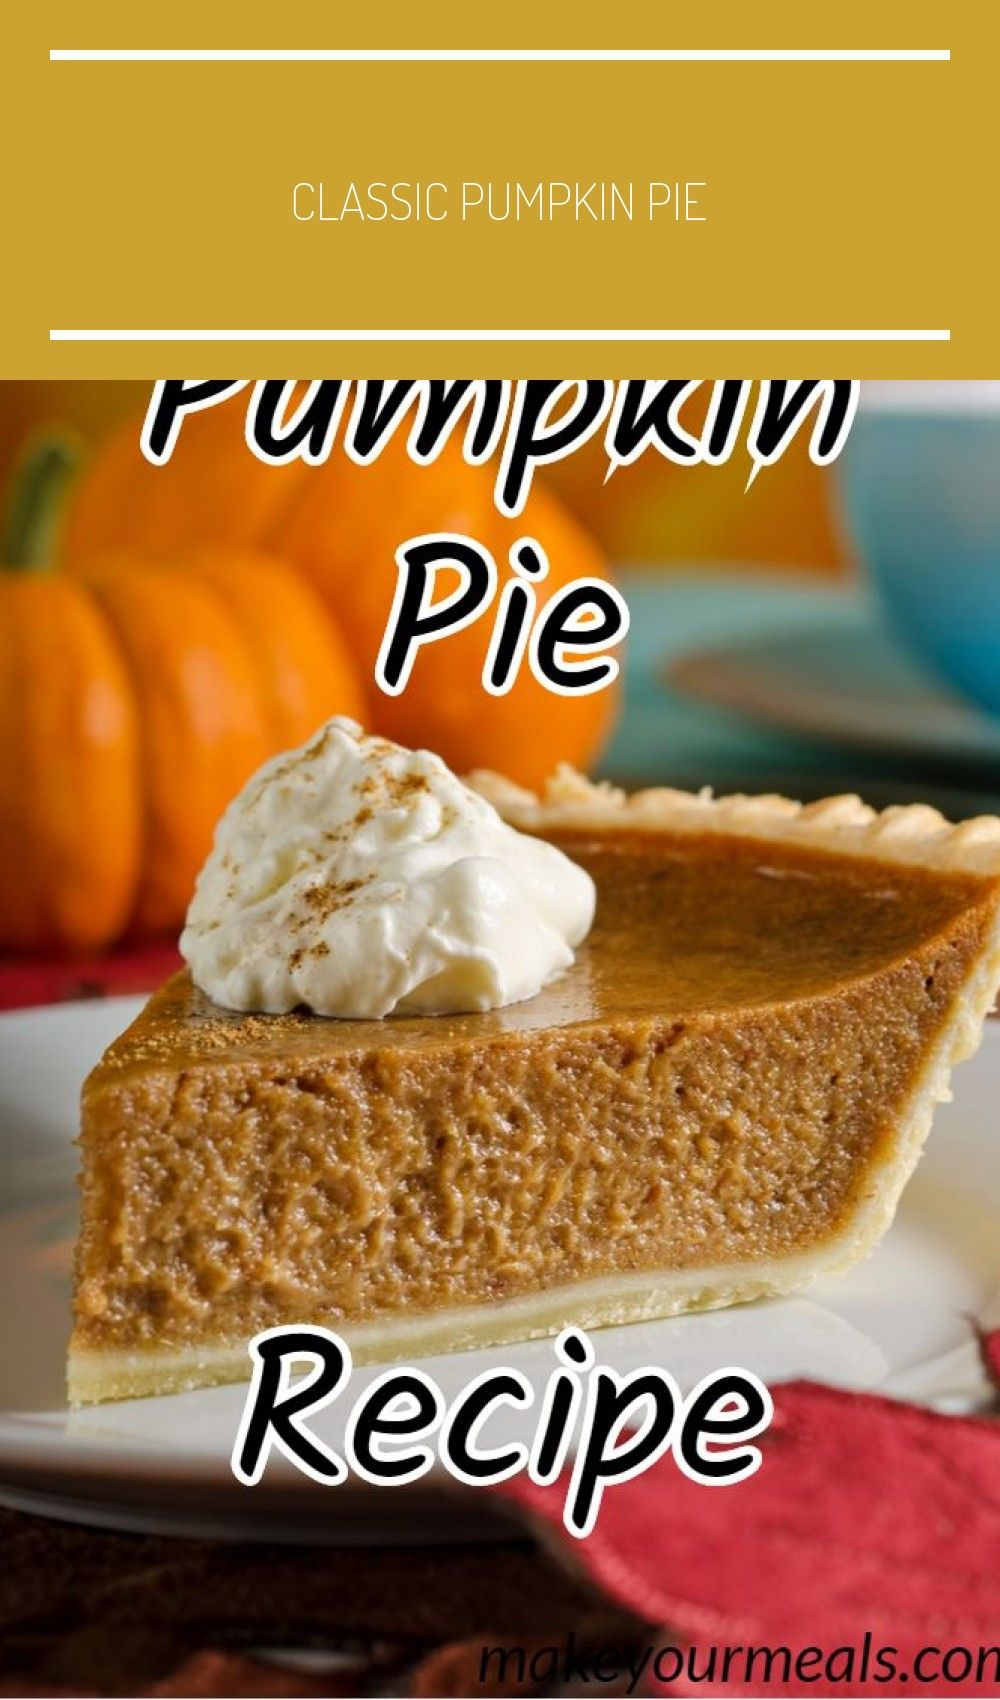 How to make a classic Pumpkin Pie just like Grandma made!  #pumpkin #pie #classic #grandma #dessert #puree #recipe #easy #fall #Halloween #Thanksgiving #Christmas #makeyourmeals #pumpkin pie recipe homemade puree Grandma's Pumpkin Pie Recipe